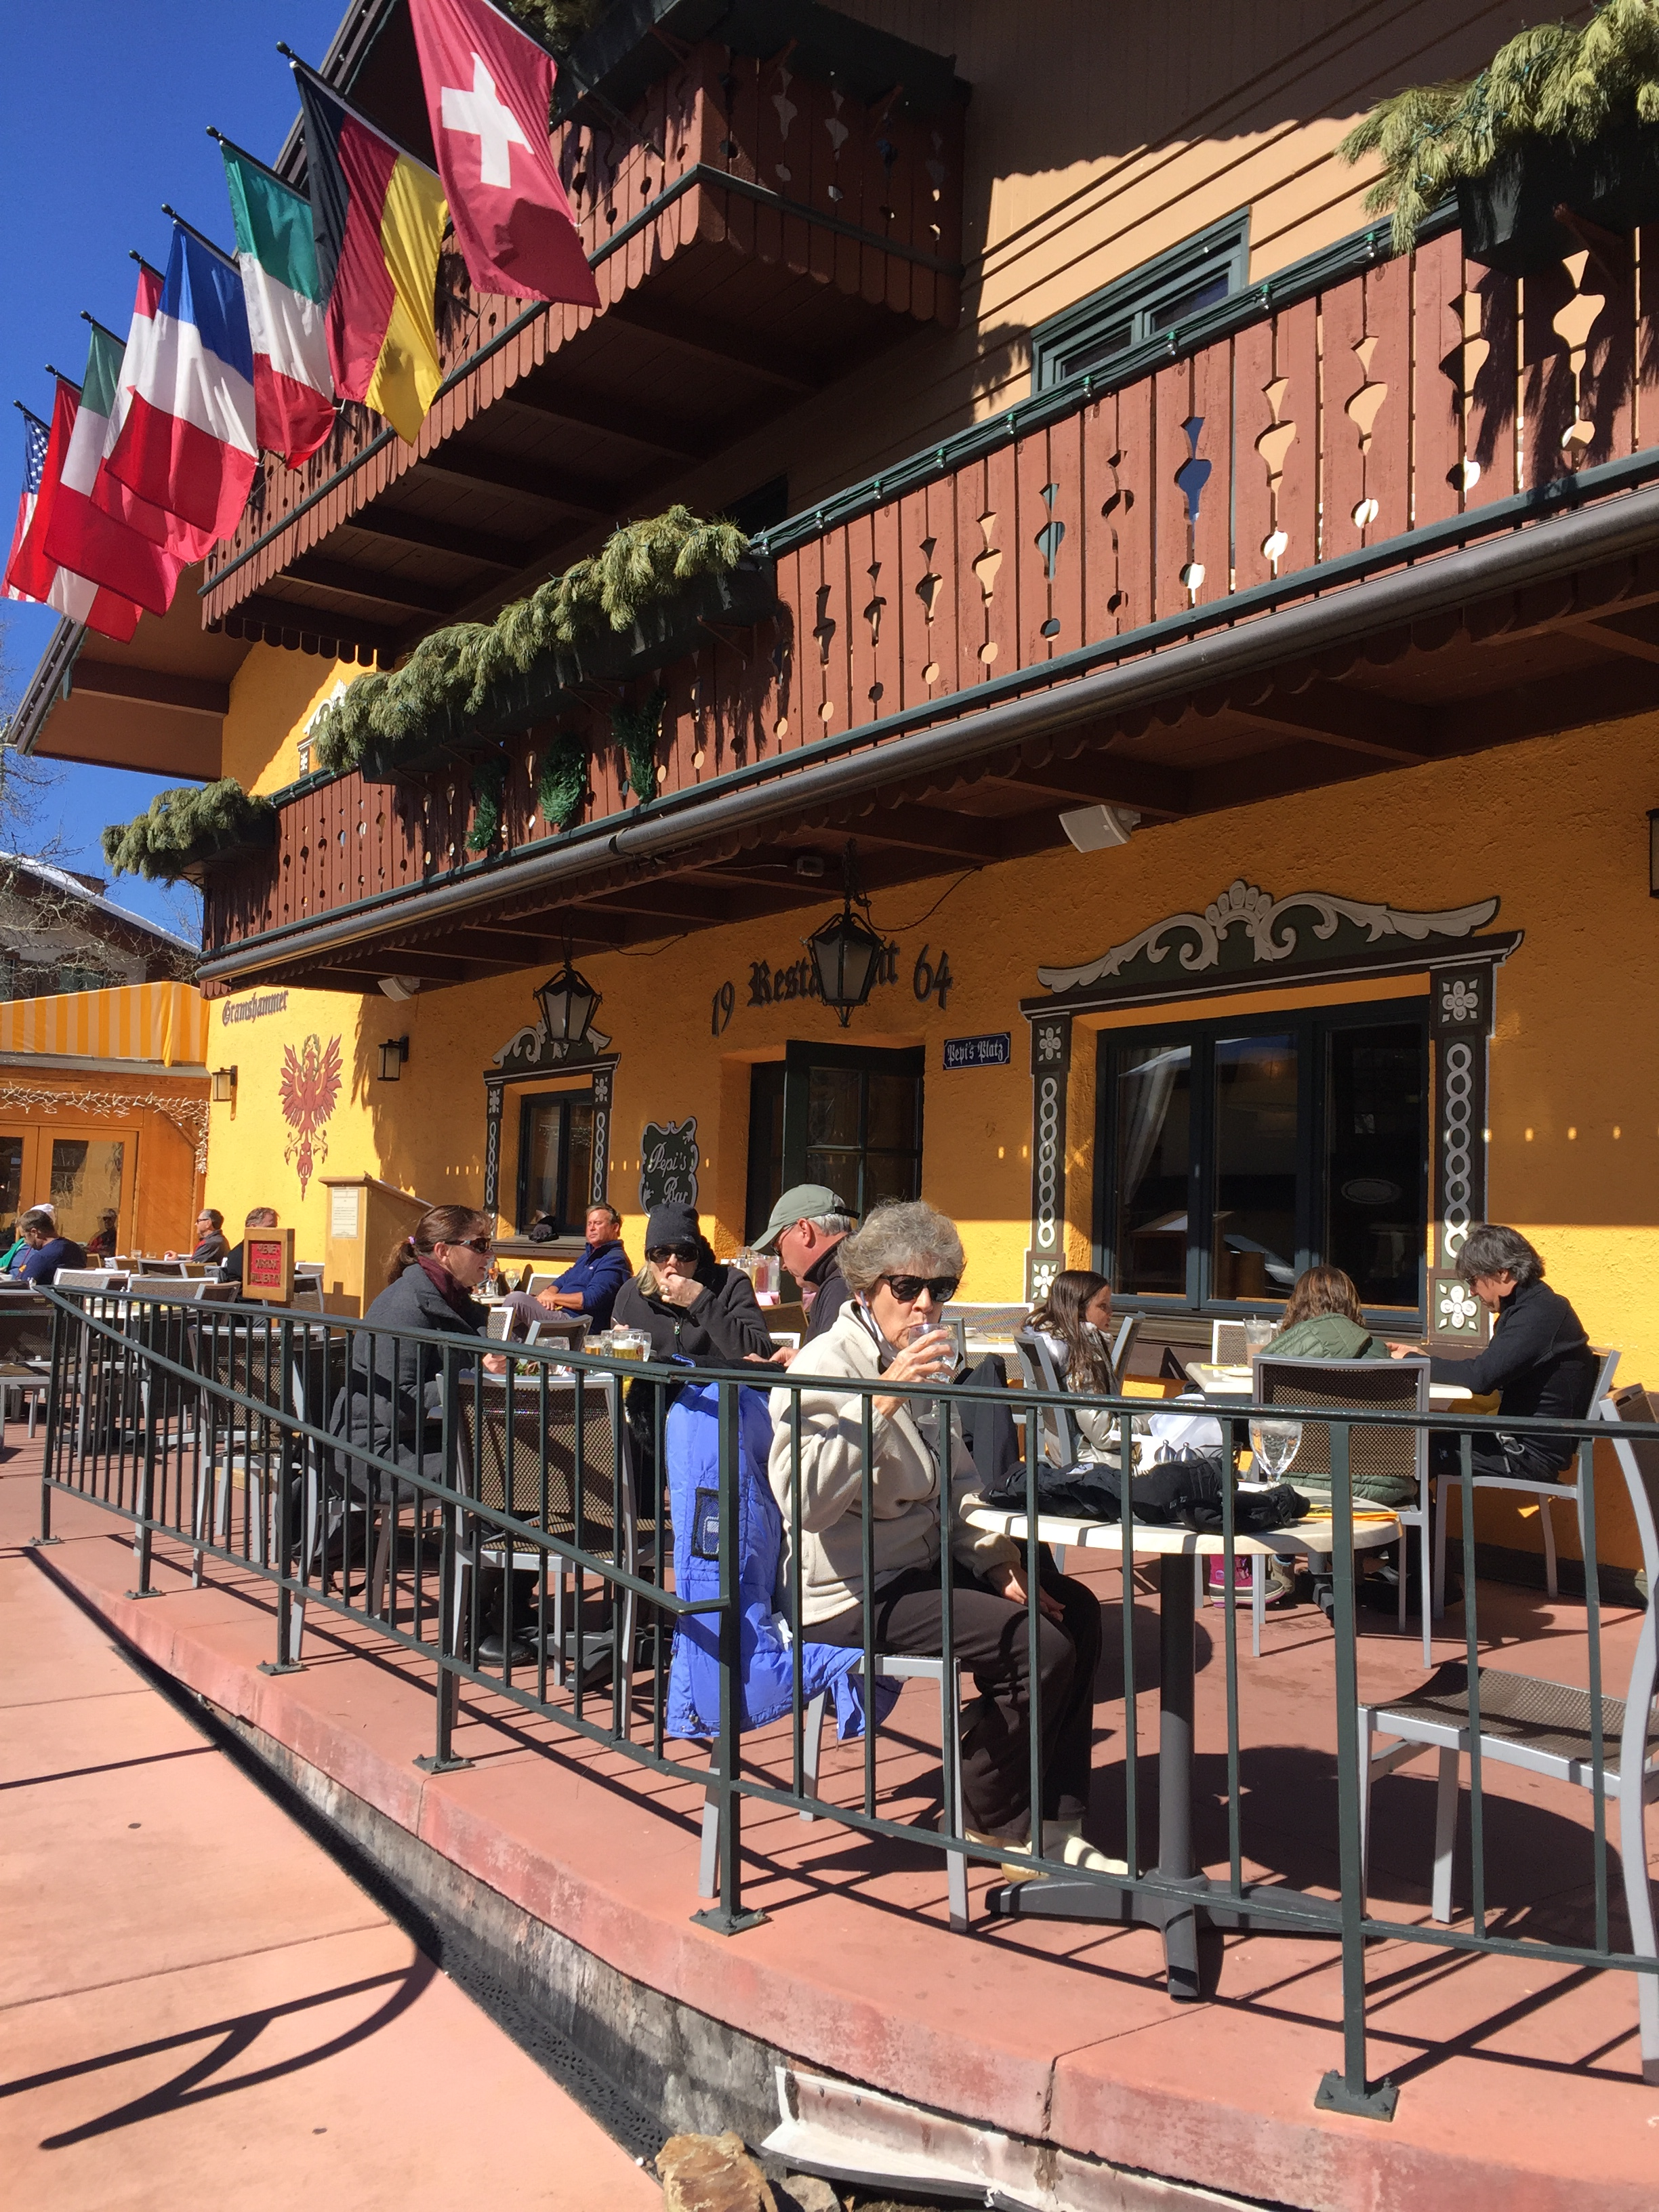 Vail photos and Other Fun Stuff from a Snowy Haven - Linda Spalla